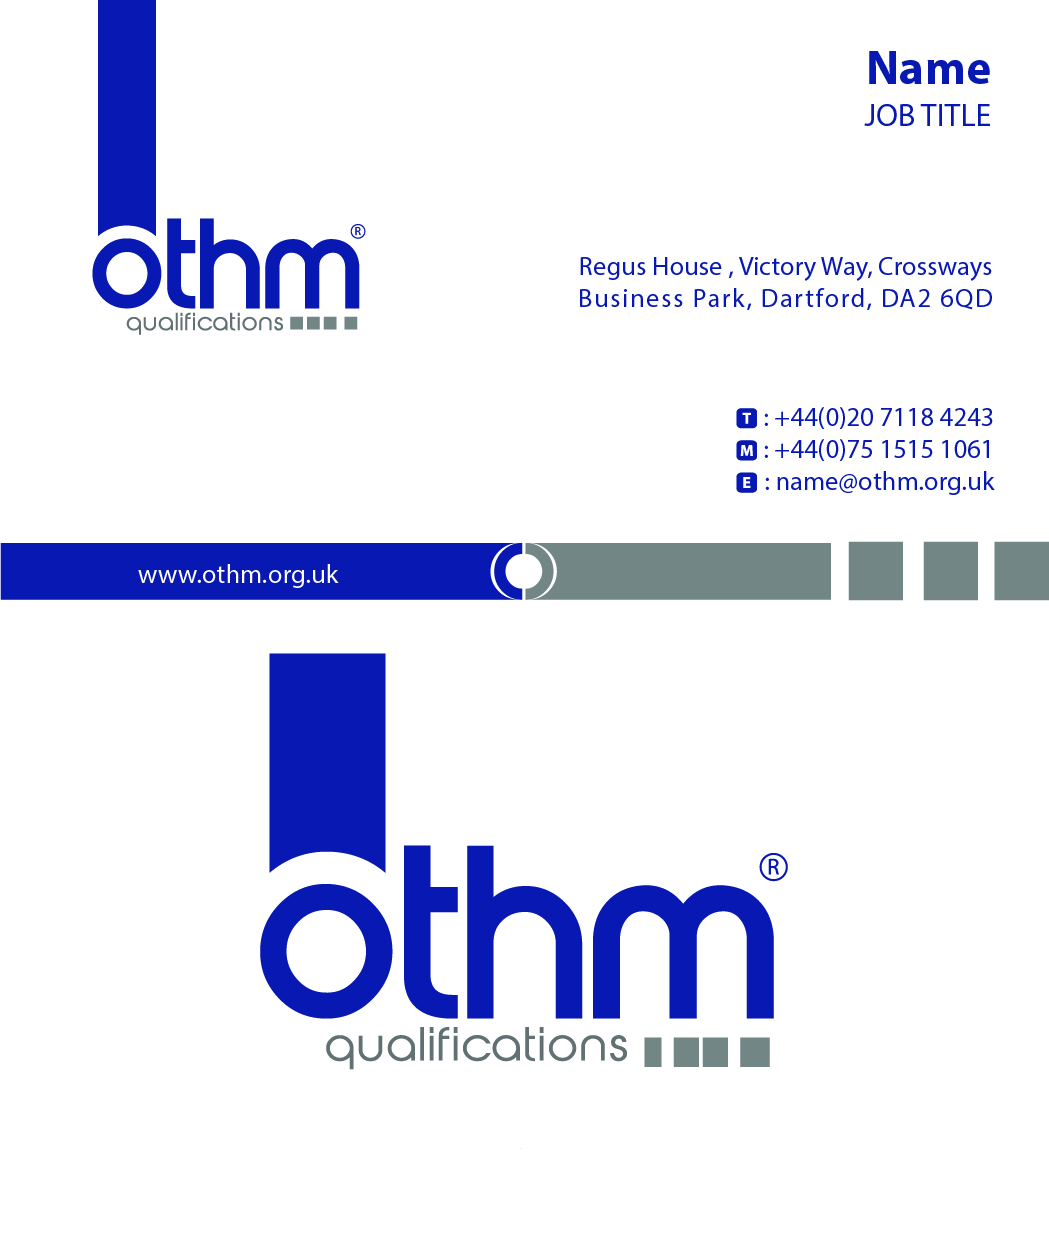 Serious professional education business card design for the business card design by sid designer for the organisation for tourism hospitality management design reheart Image collections